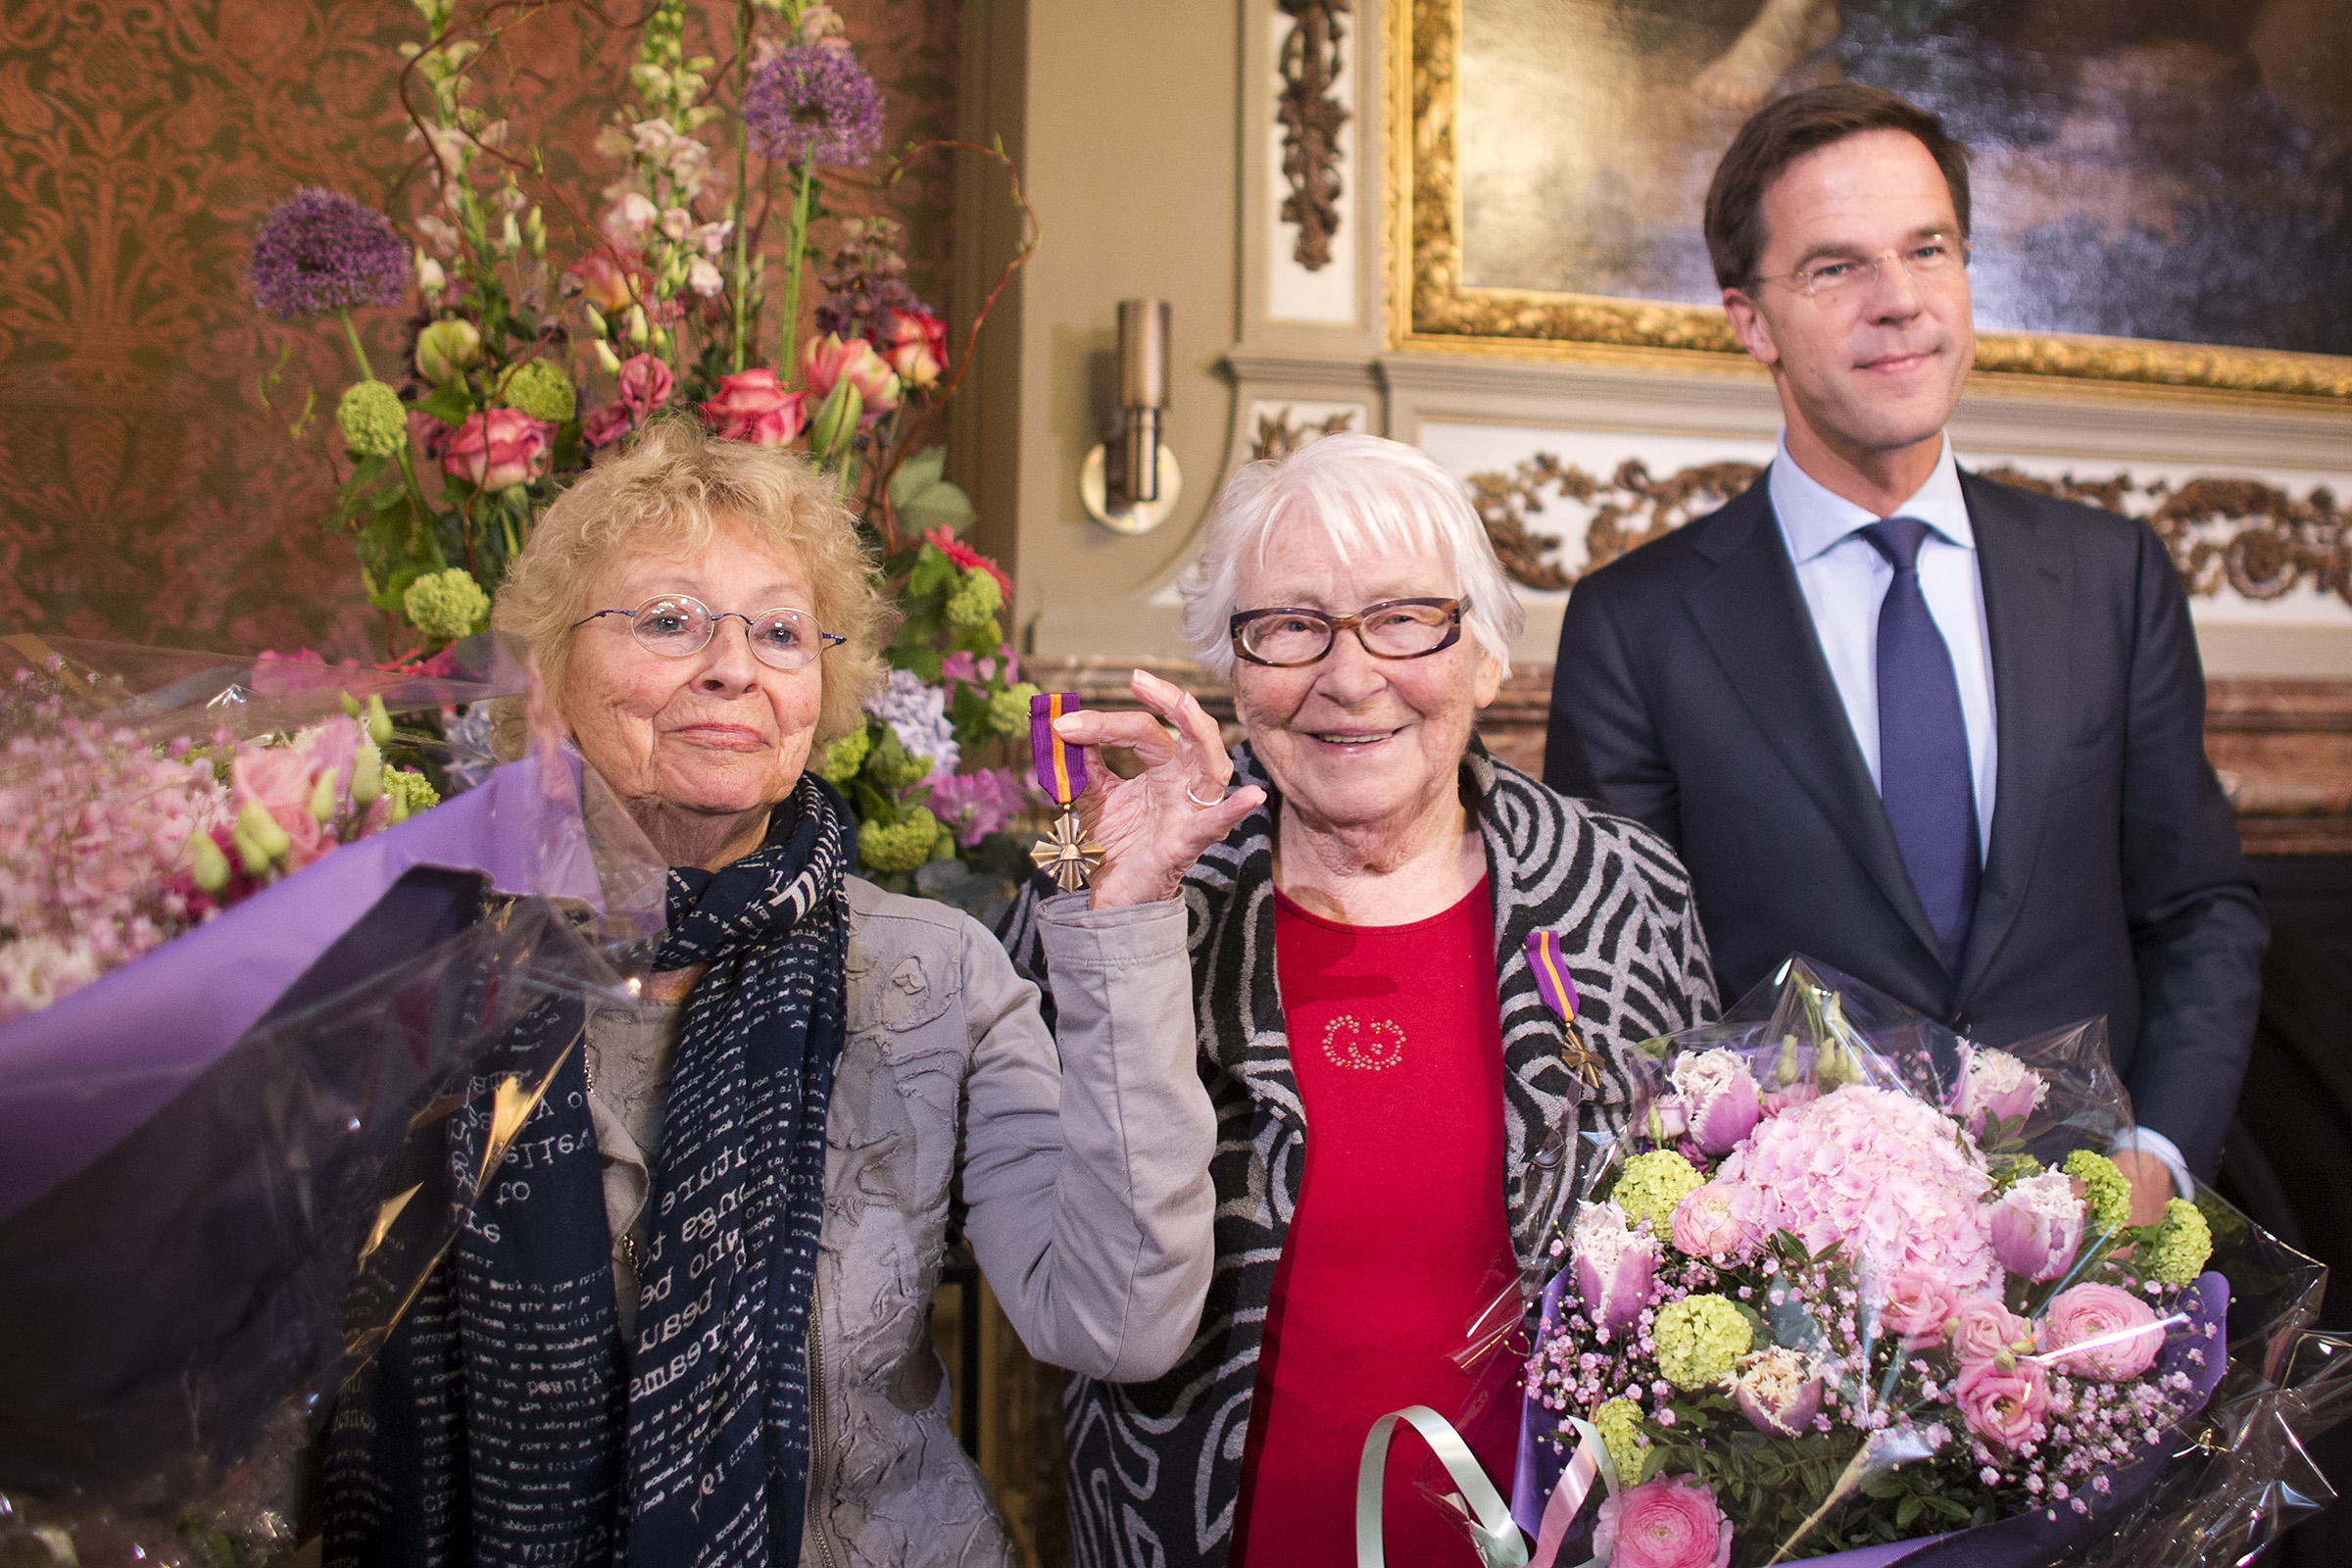 In 2014, Ms. Freddie Oversteegen, left, and her sister, Truus, were awarded the Mobilization War Cross by Mark Rutte, the Dutch prime minister.